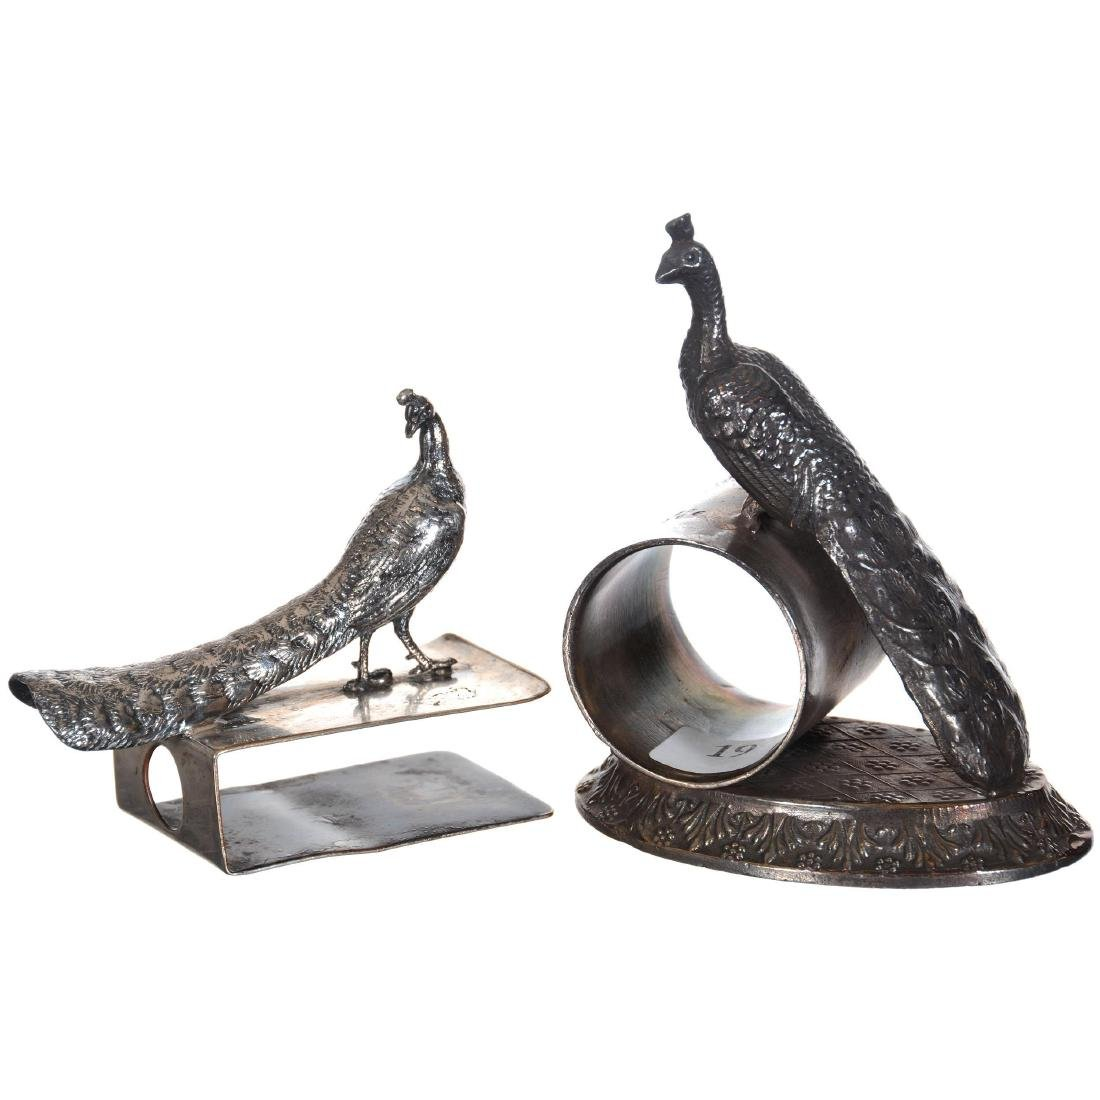 Two Figural Silver-plate Items